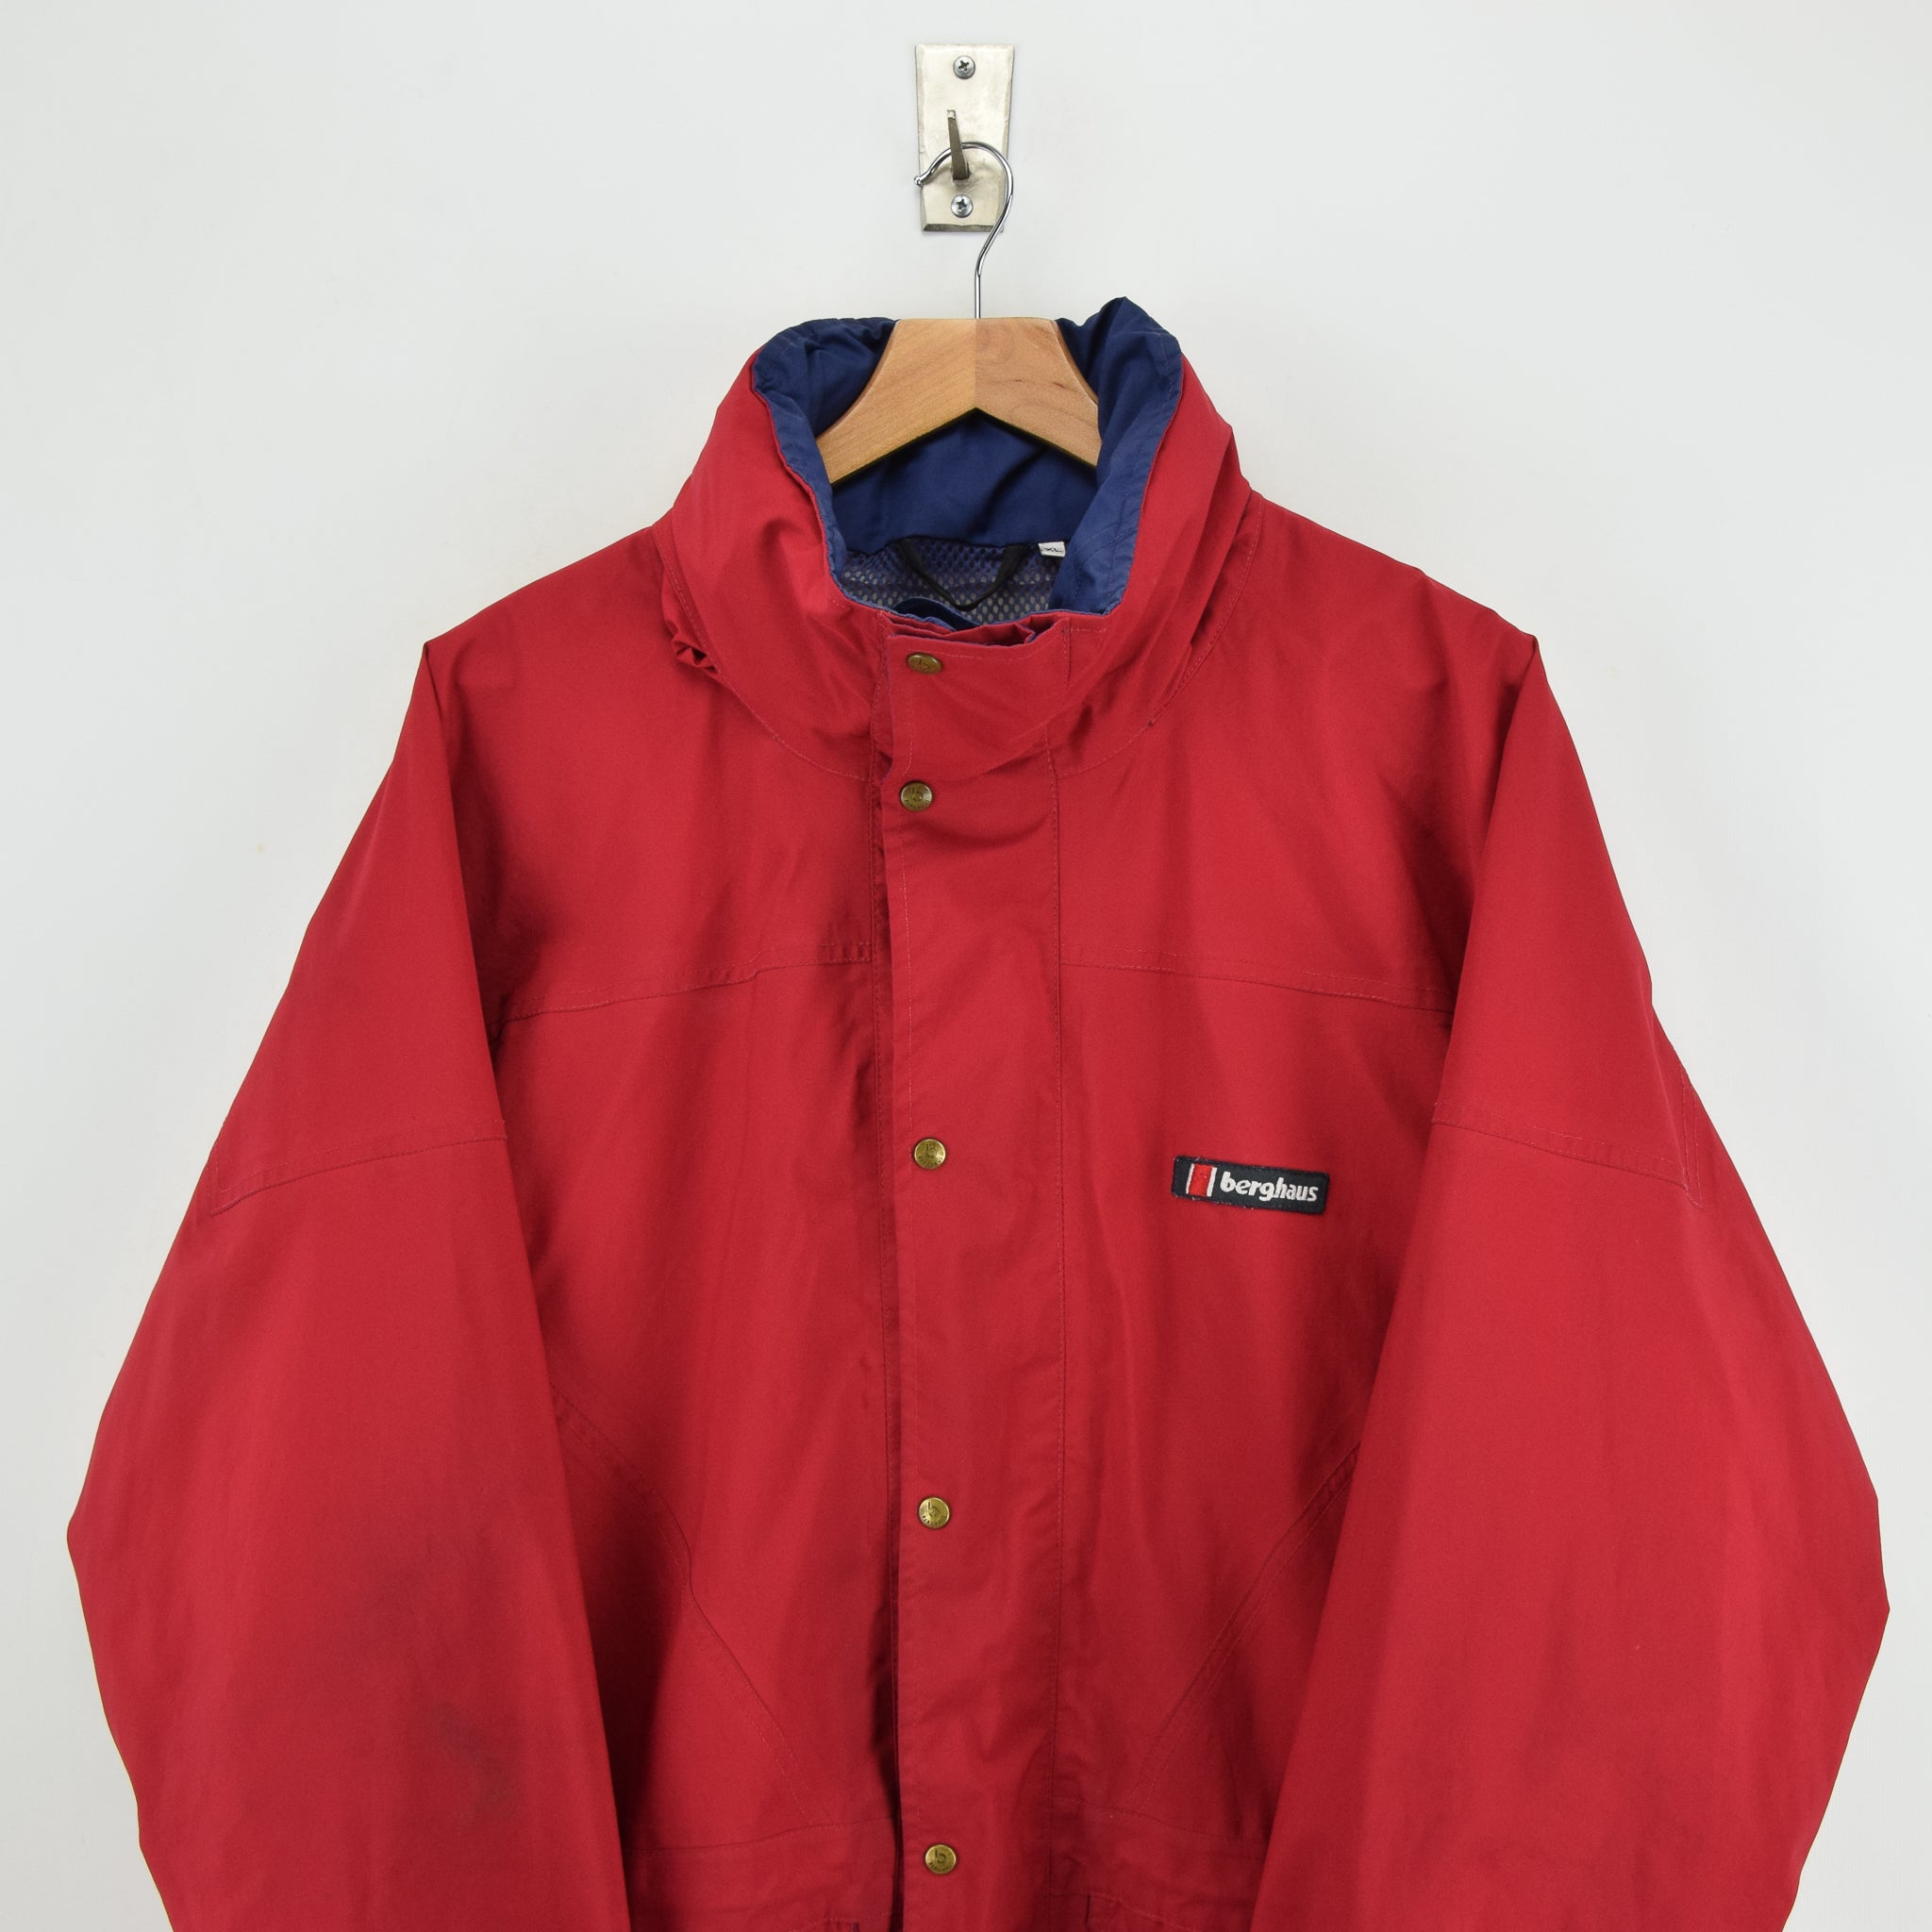 Vintage Berghaus Cornice Red Goretex Waterproof Outdoor Jacket XL chest